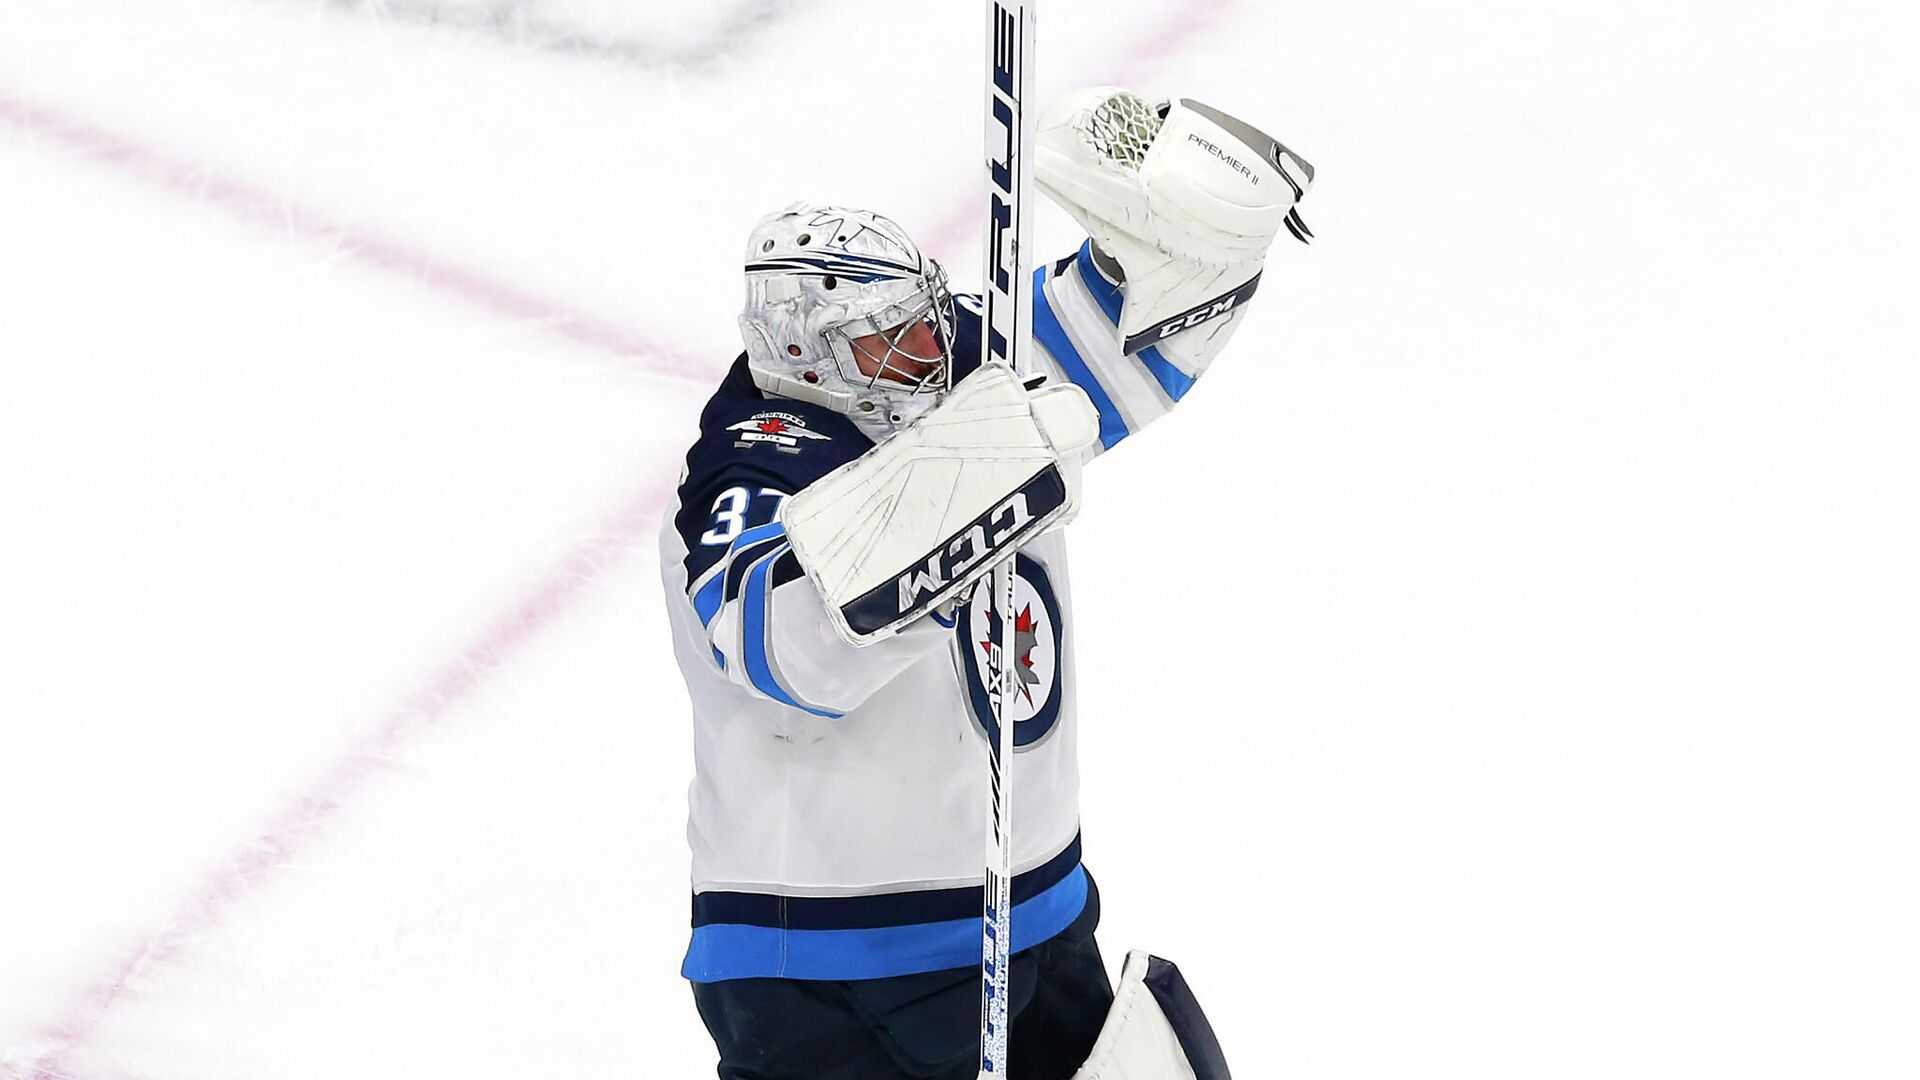 EDMONTON, ALBERTA - AUGUST 03: Connor Hellebuyck #37 of the Winnipeg Jets celebrates the win over the Calgary Flames during Game Two of the Western Conference Qualification Round prior to the 2020 NHL Stanley Cup Playoffs at Rogers Place on August 03, 2020 in Edmonton, Alberta. The Winnipeg Jets defeated the Calgary Flames 3-2.   Jeff Vinnick/Getty Images/AFP - РИА Новости, 1920, 22.09.2020